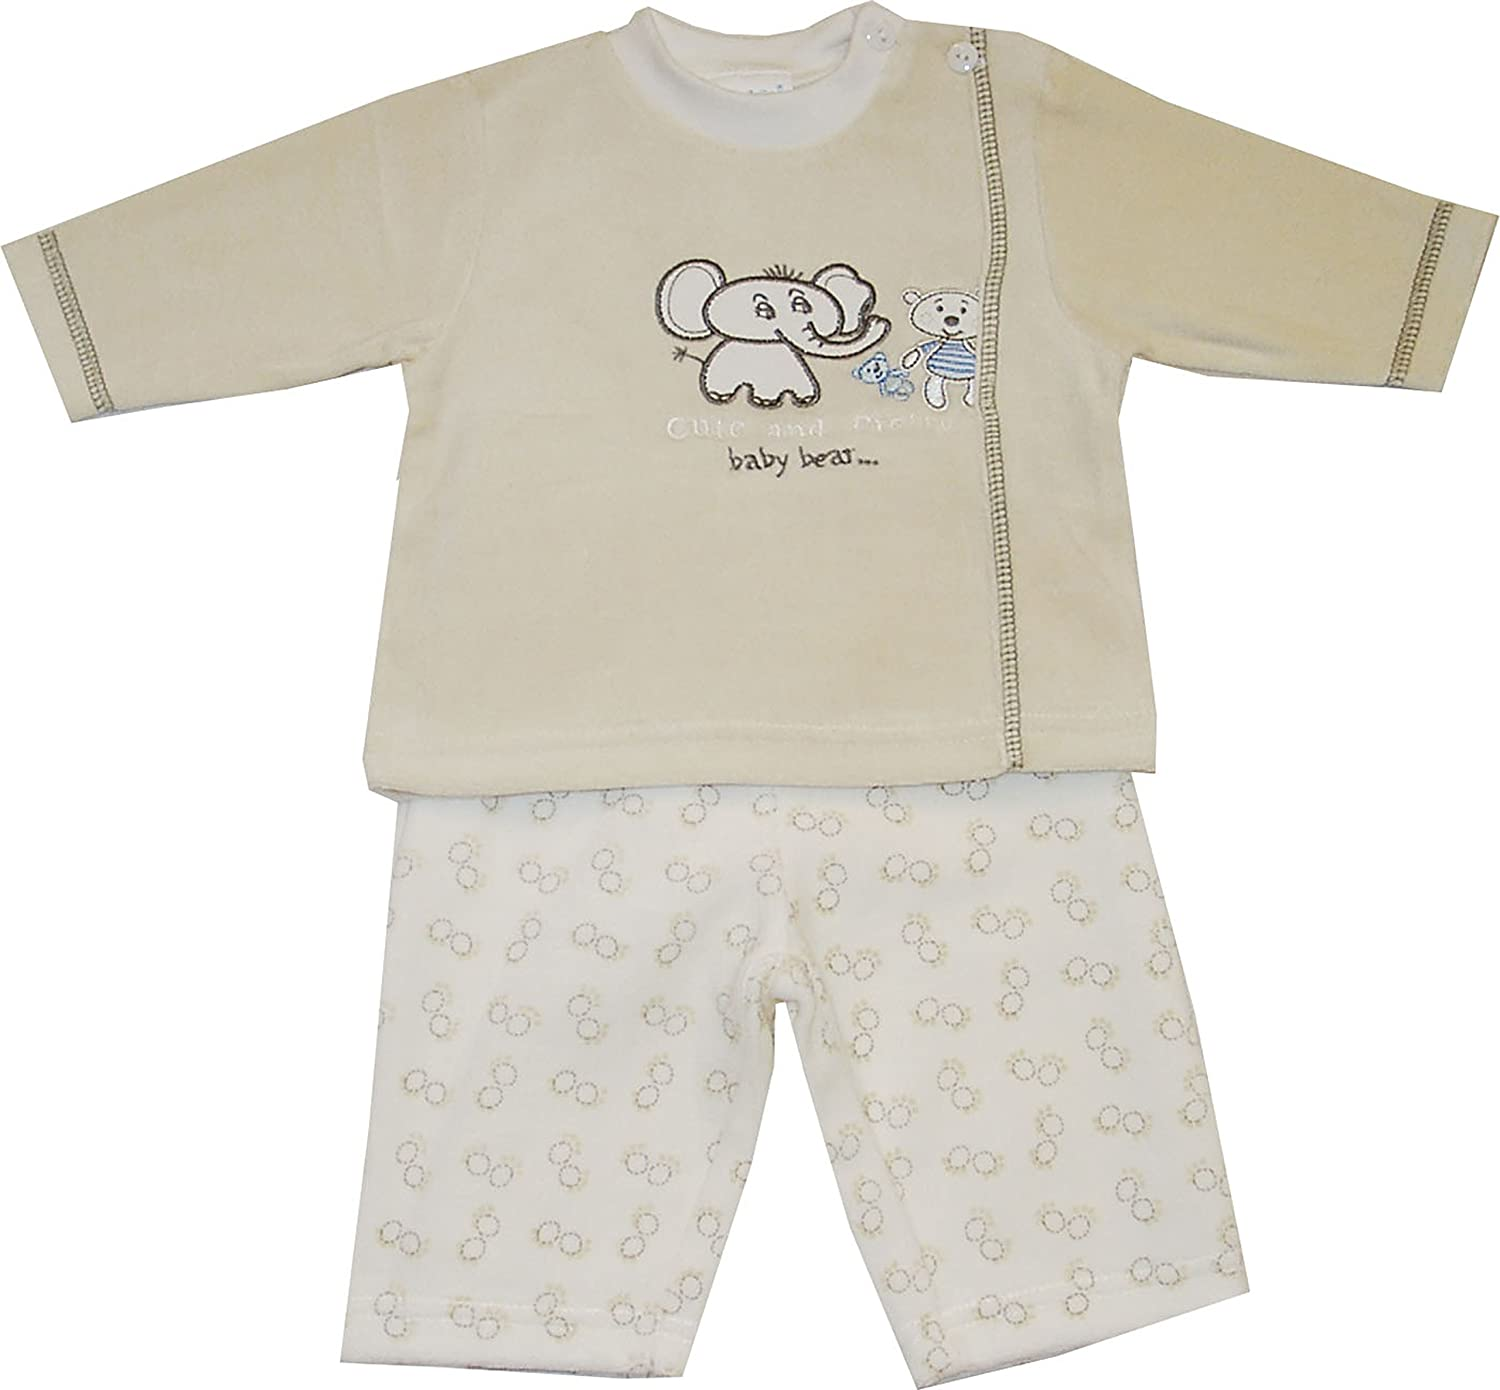 Schnizler Unisex Baby Jogginganzug Nickianzug Cute And Pretty, Allover Hose Gr. 68 Gelb (original 900) Playshoes GmbH 19536887